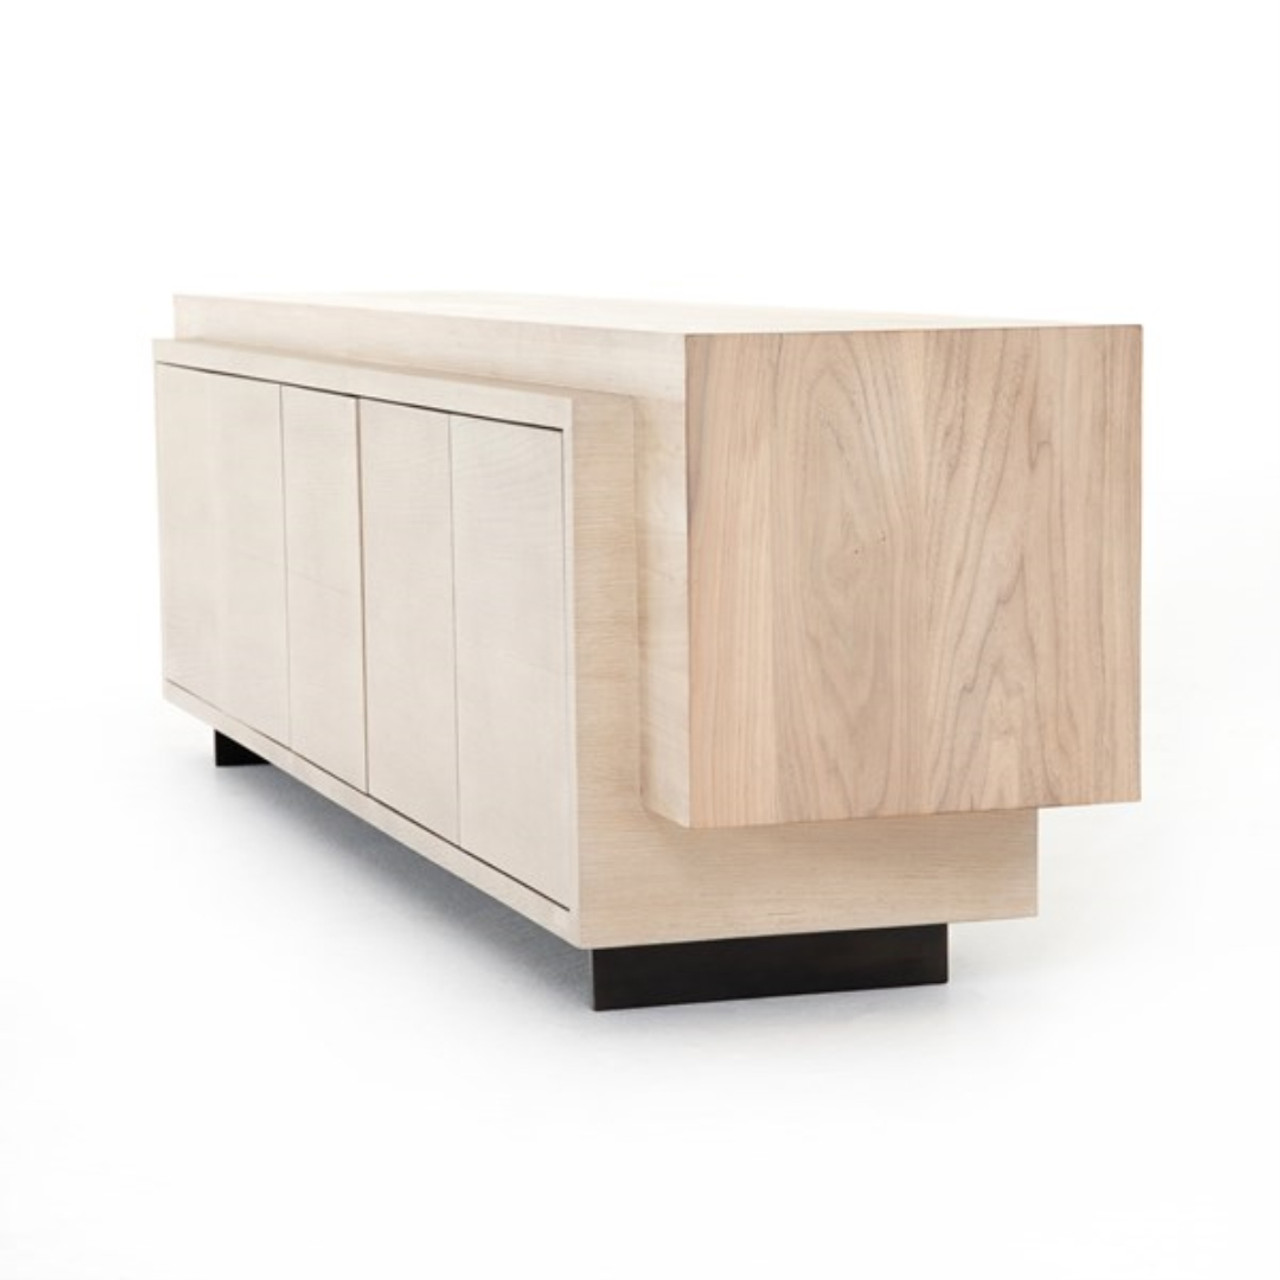 Persey Media Console - White Washed Walnut